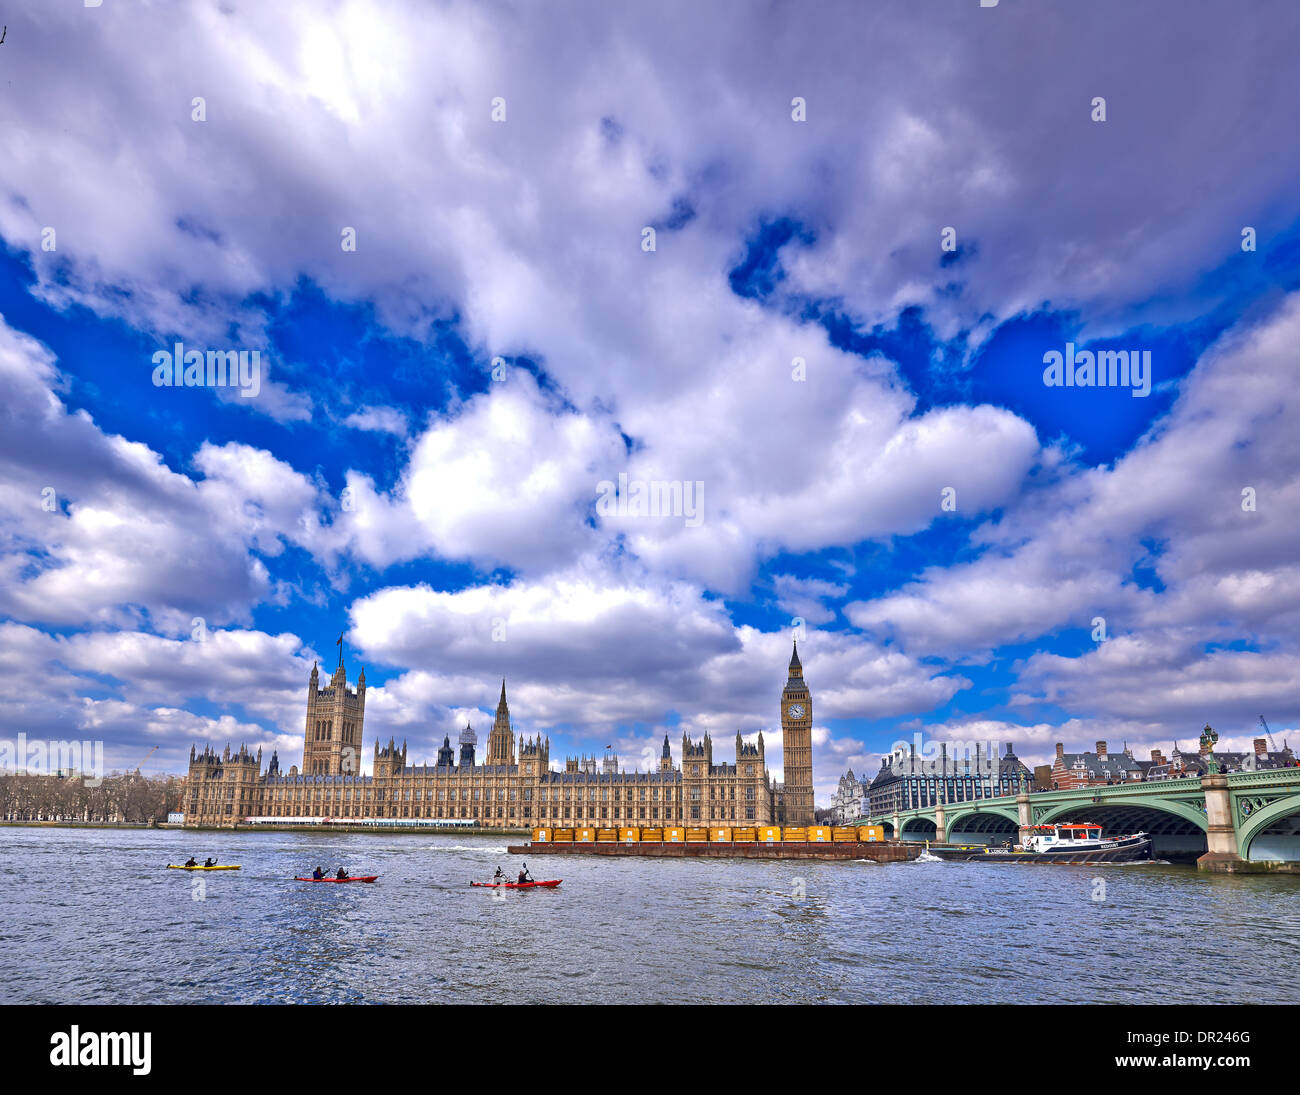 The Palace of Westminster is the meeting place of the House of Commons and the House of Lords - Stock Image